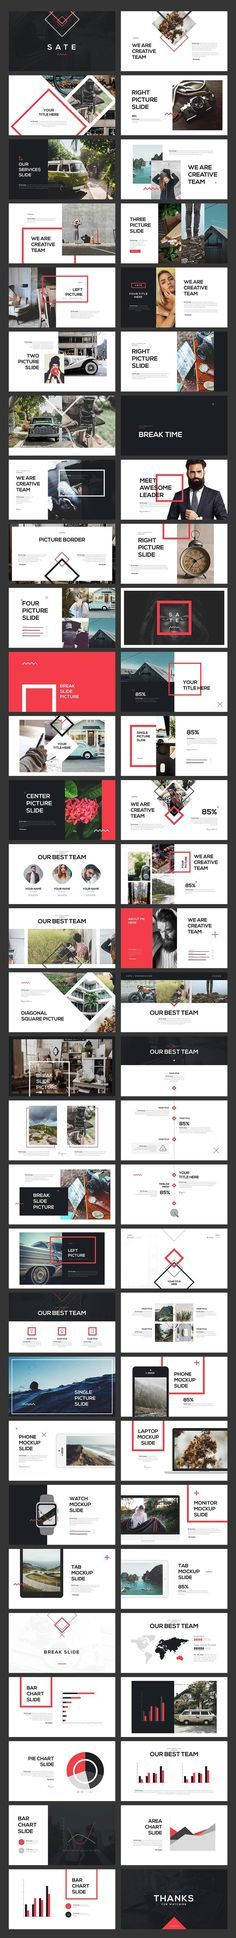 SATE PowerPoint Template by Angkalimabelas on @creativemarket